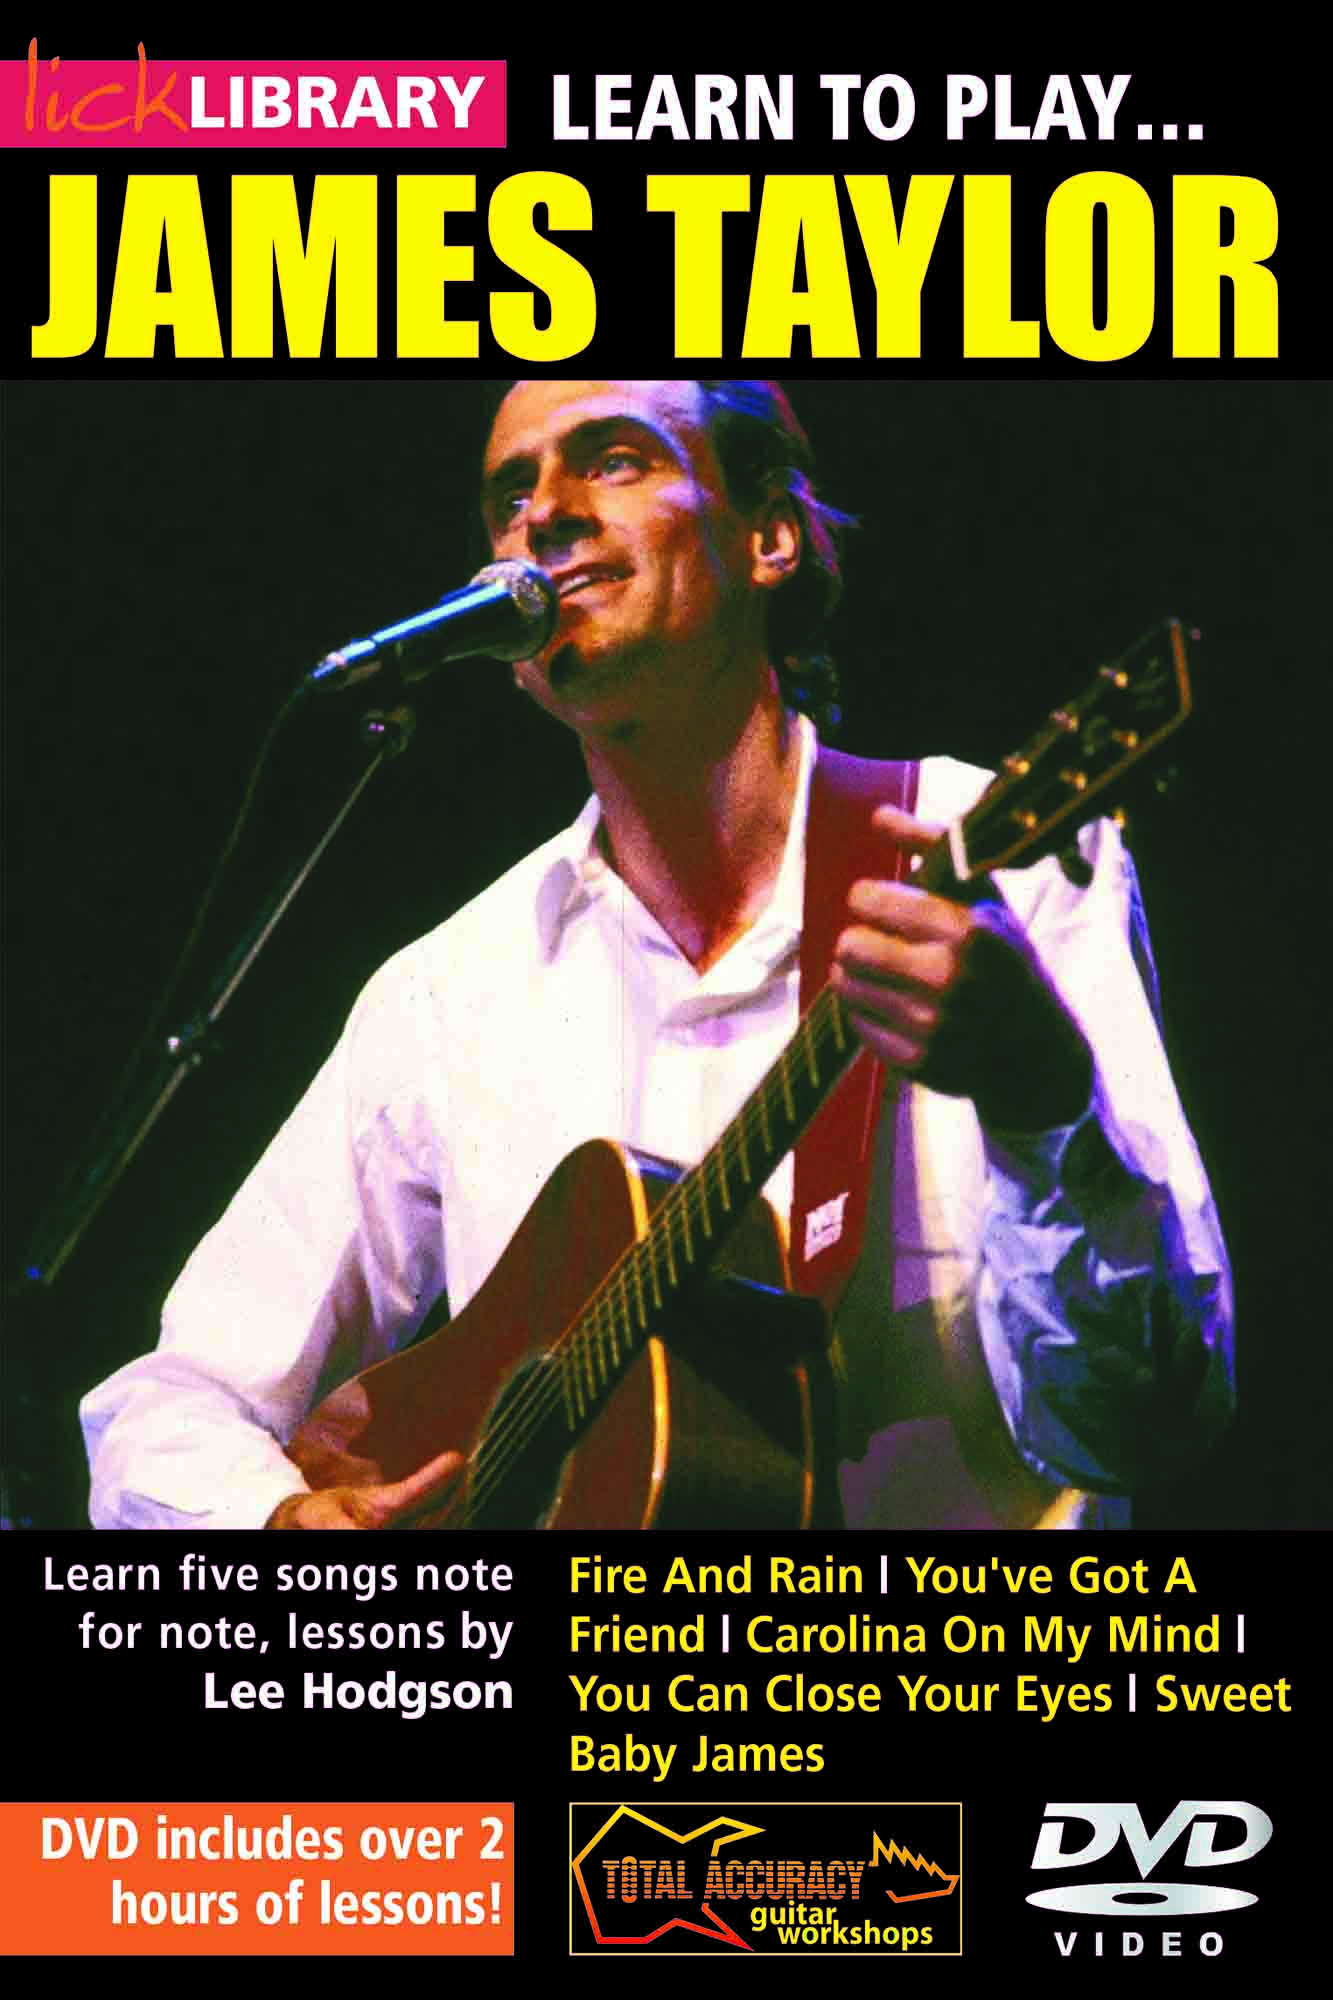 Learn To Play James Taylor